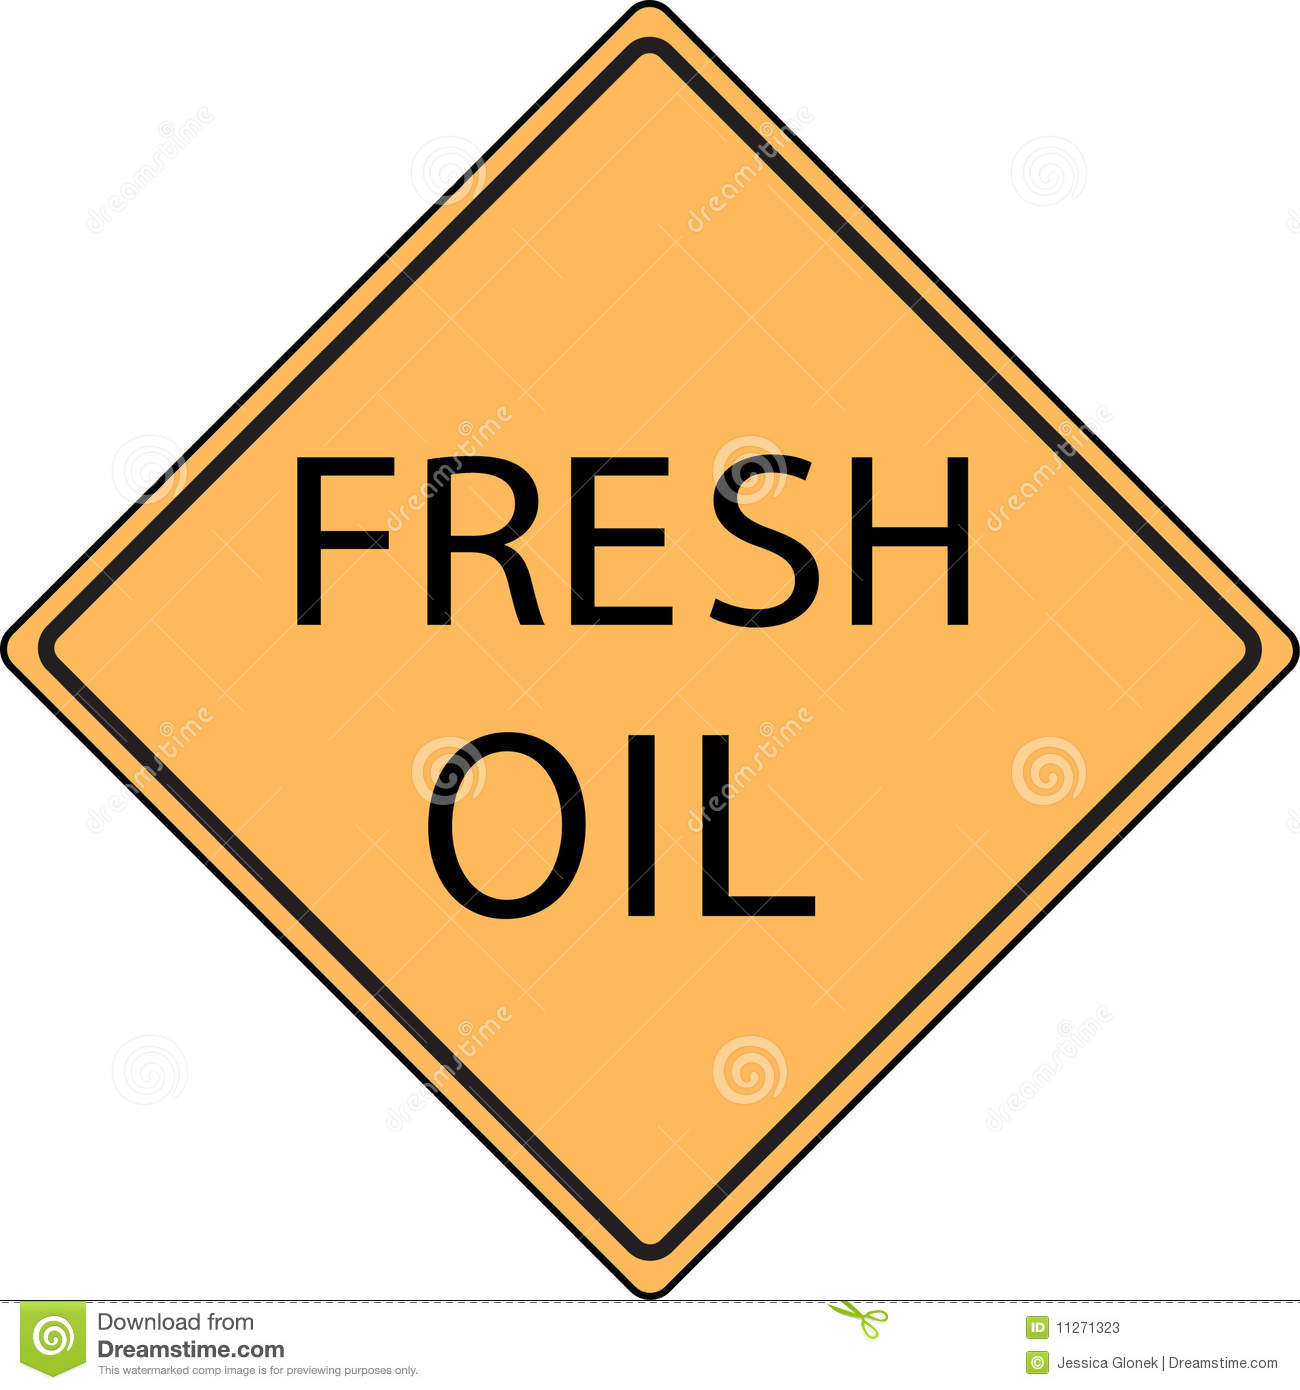 Orange Fresh Oil road sign